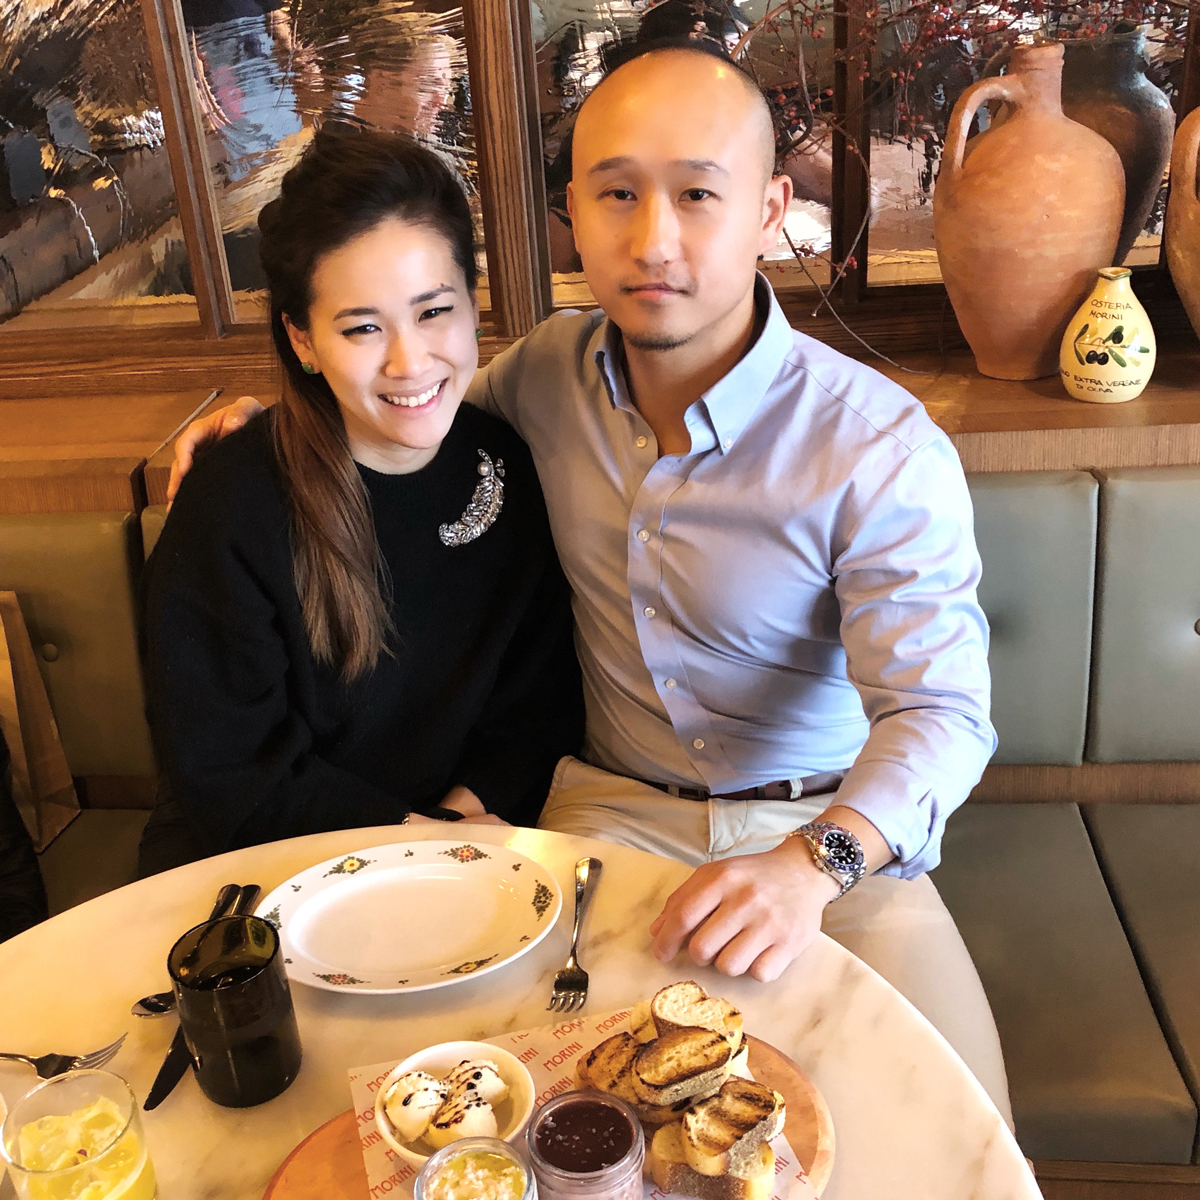 Janet Lee Chiang and Kenneth Chiang sitting together in a restaurant.